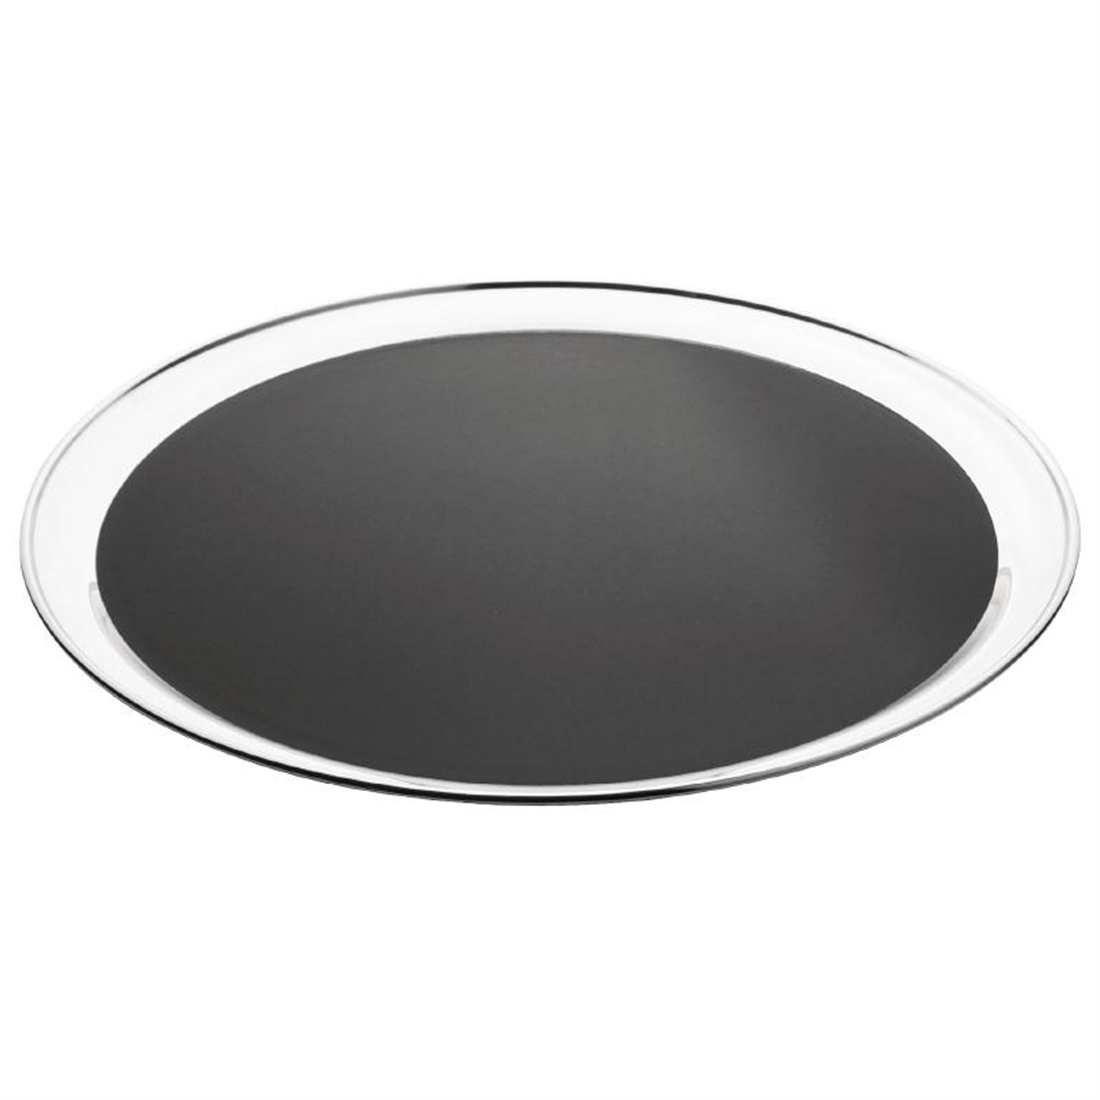 Olympia Non Slip Bar Tray Round 14 in